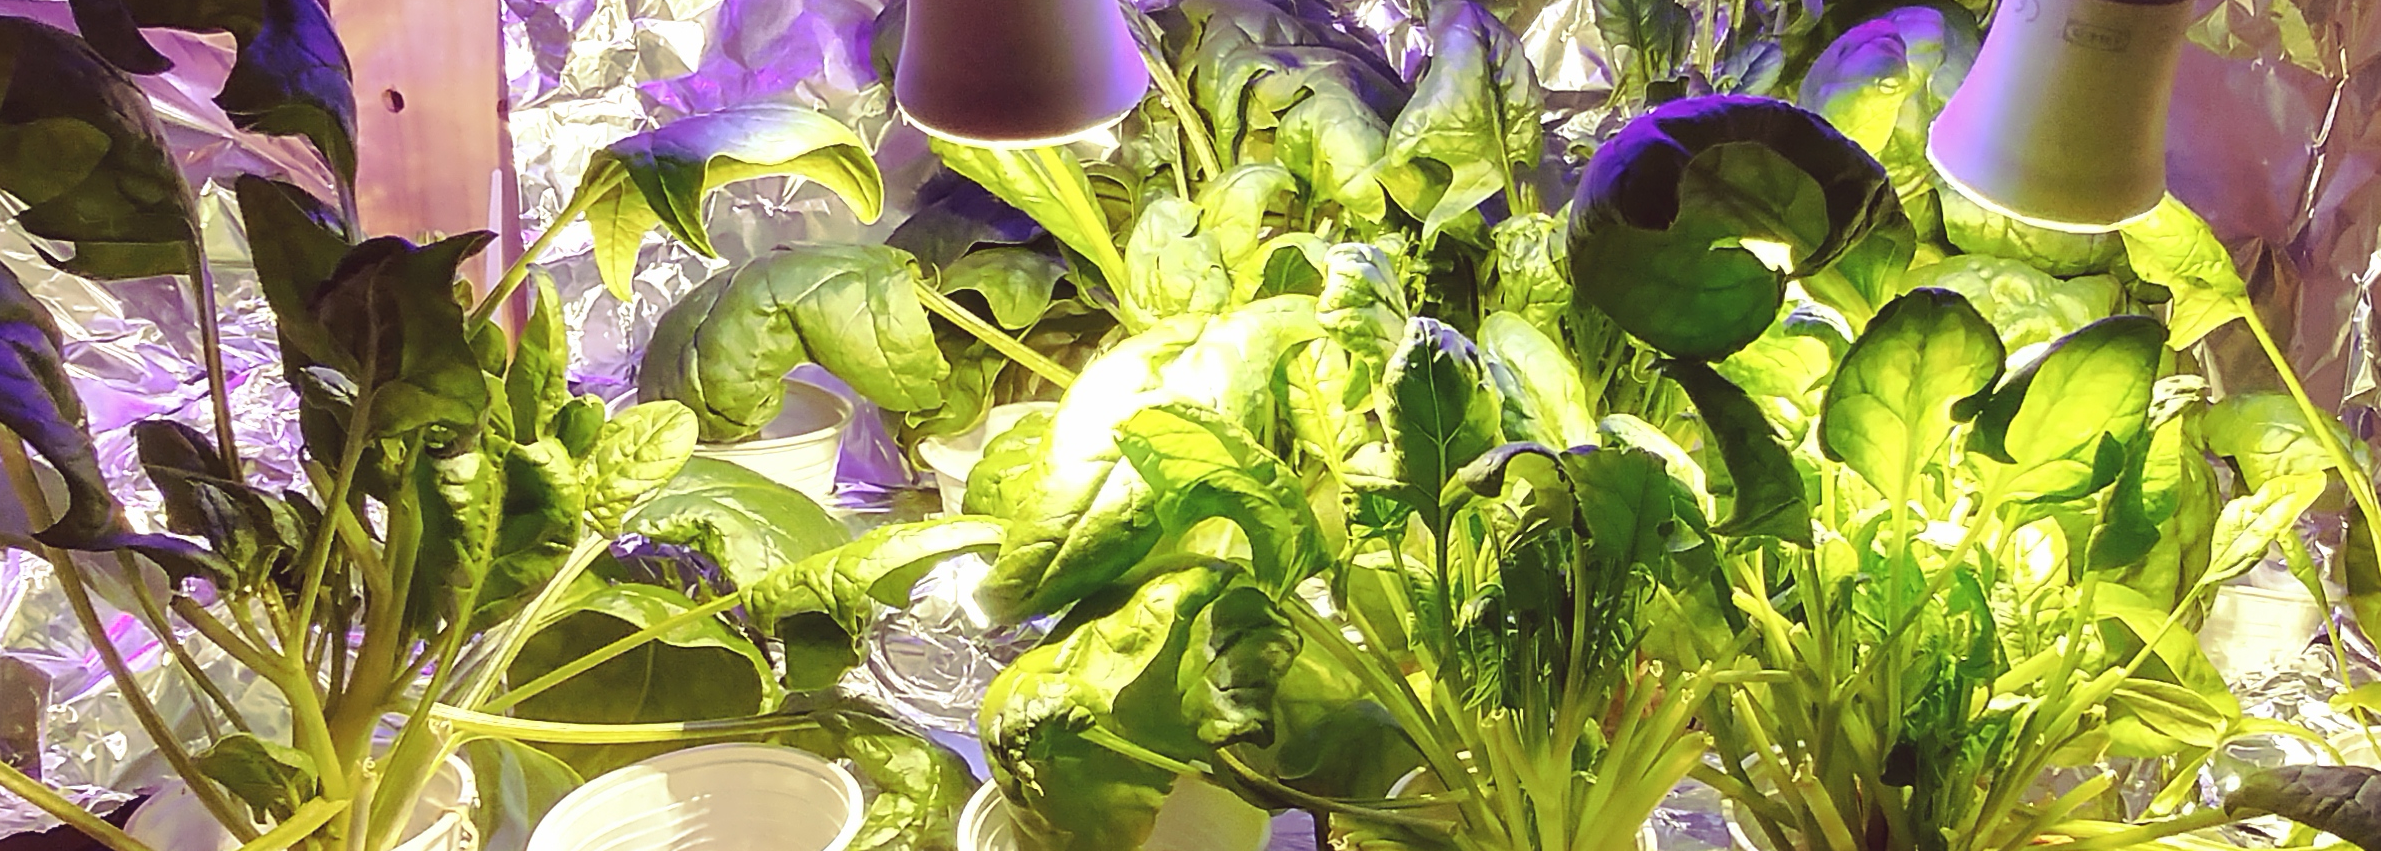 www.growthyield.com Grow your own food wherever you live - High yield crop indoors, hydroponic, aquaponic, apartment growing - how to get the highest crop yield and money return possible.